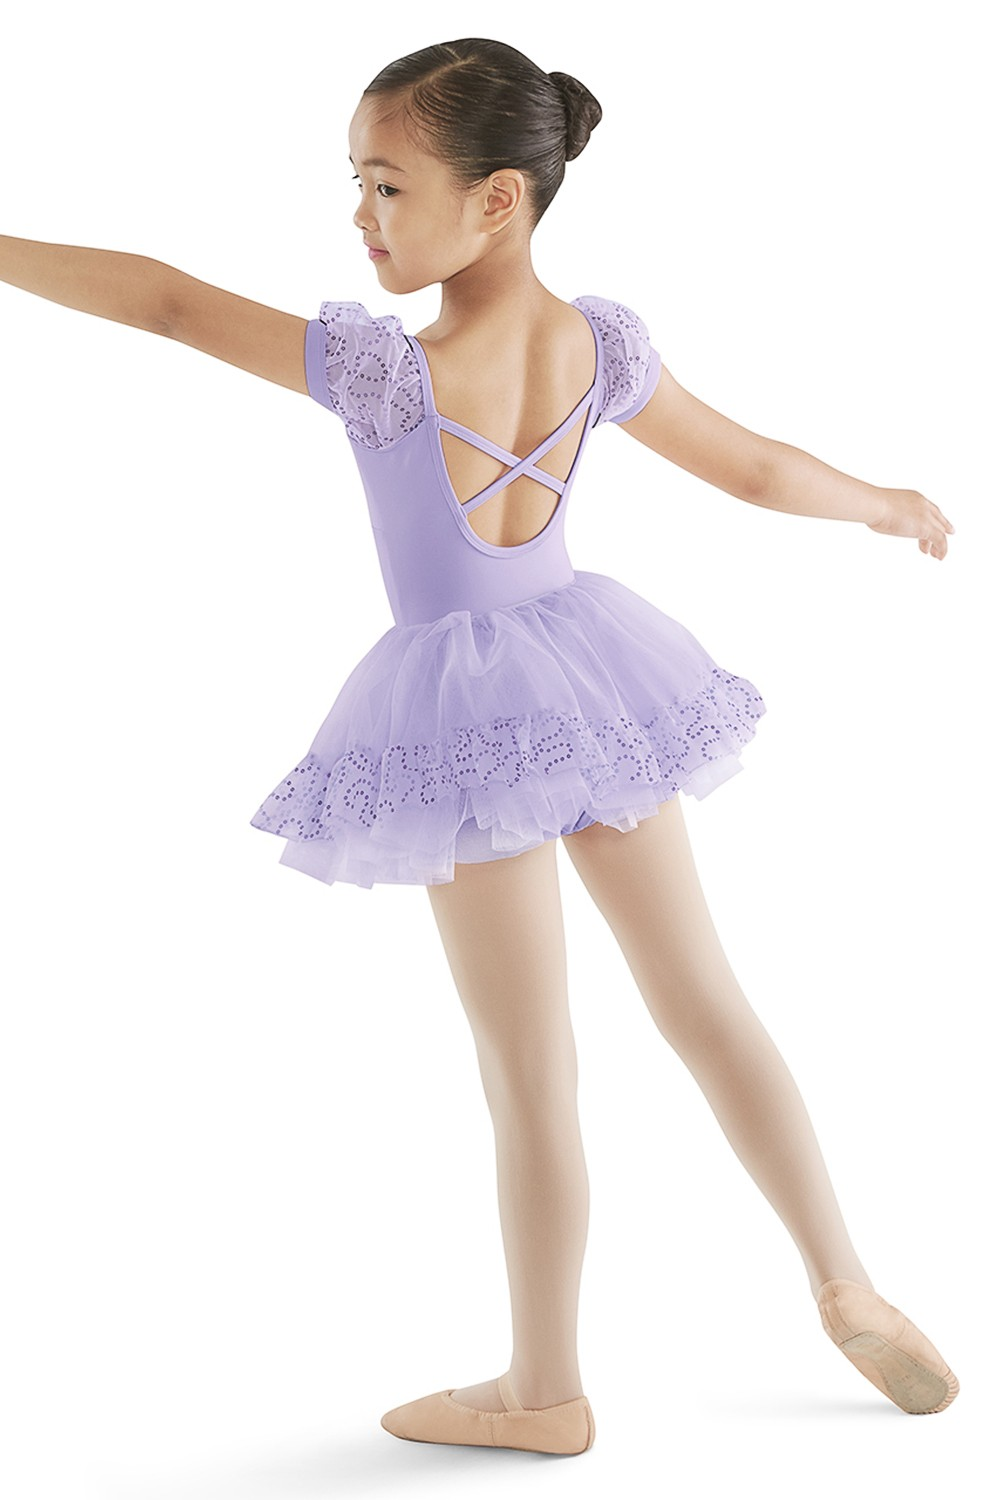 Puff Sleeve X Back Leo Children's Dance Leotards